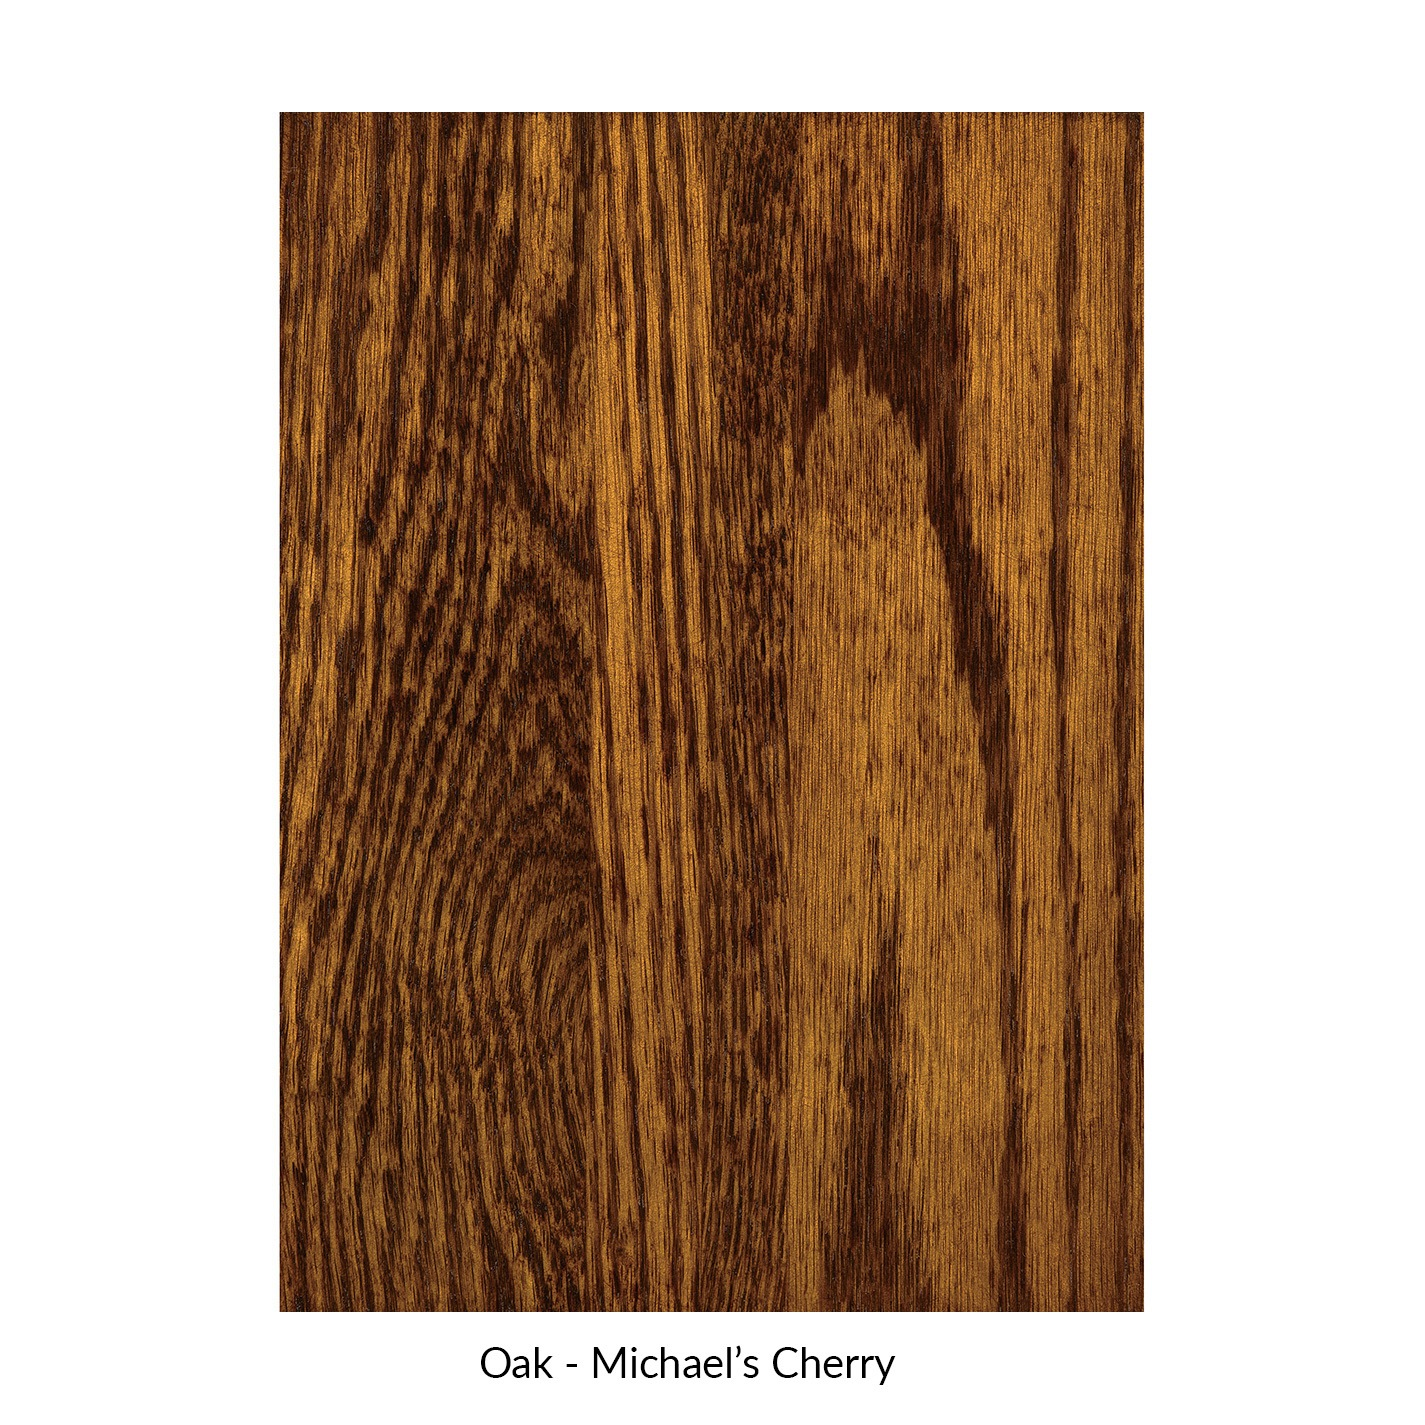 spectrum-oak-michaels-cherry.jpg